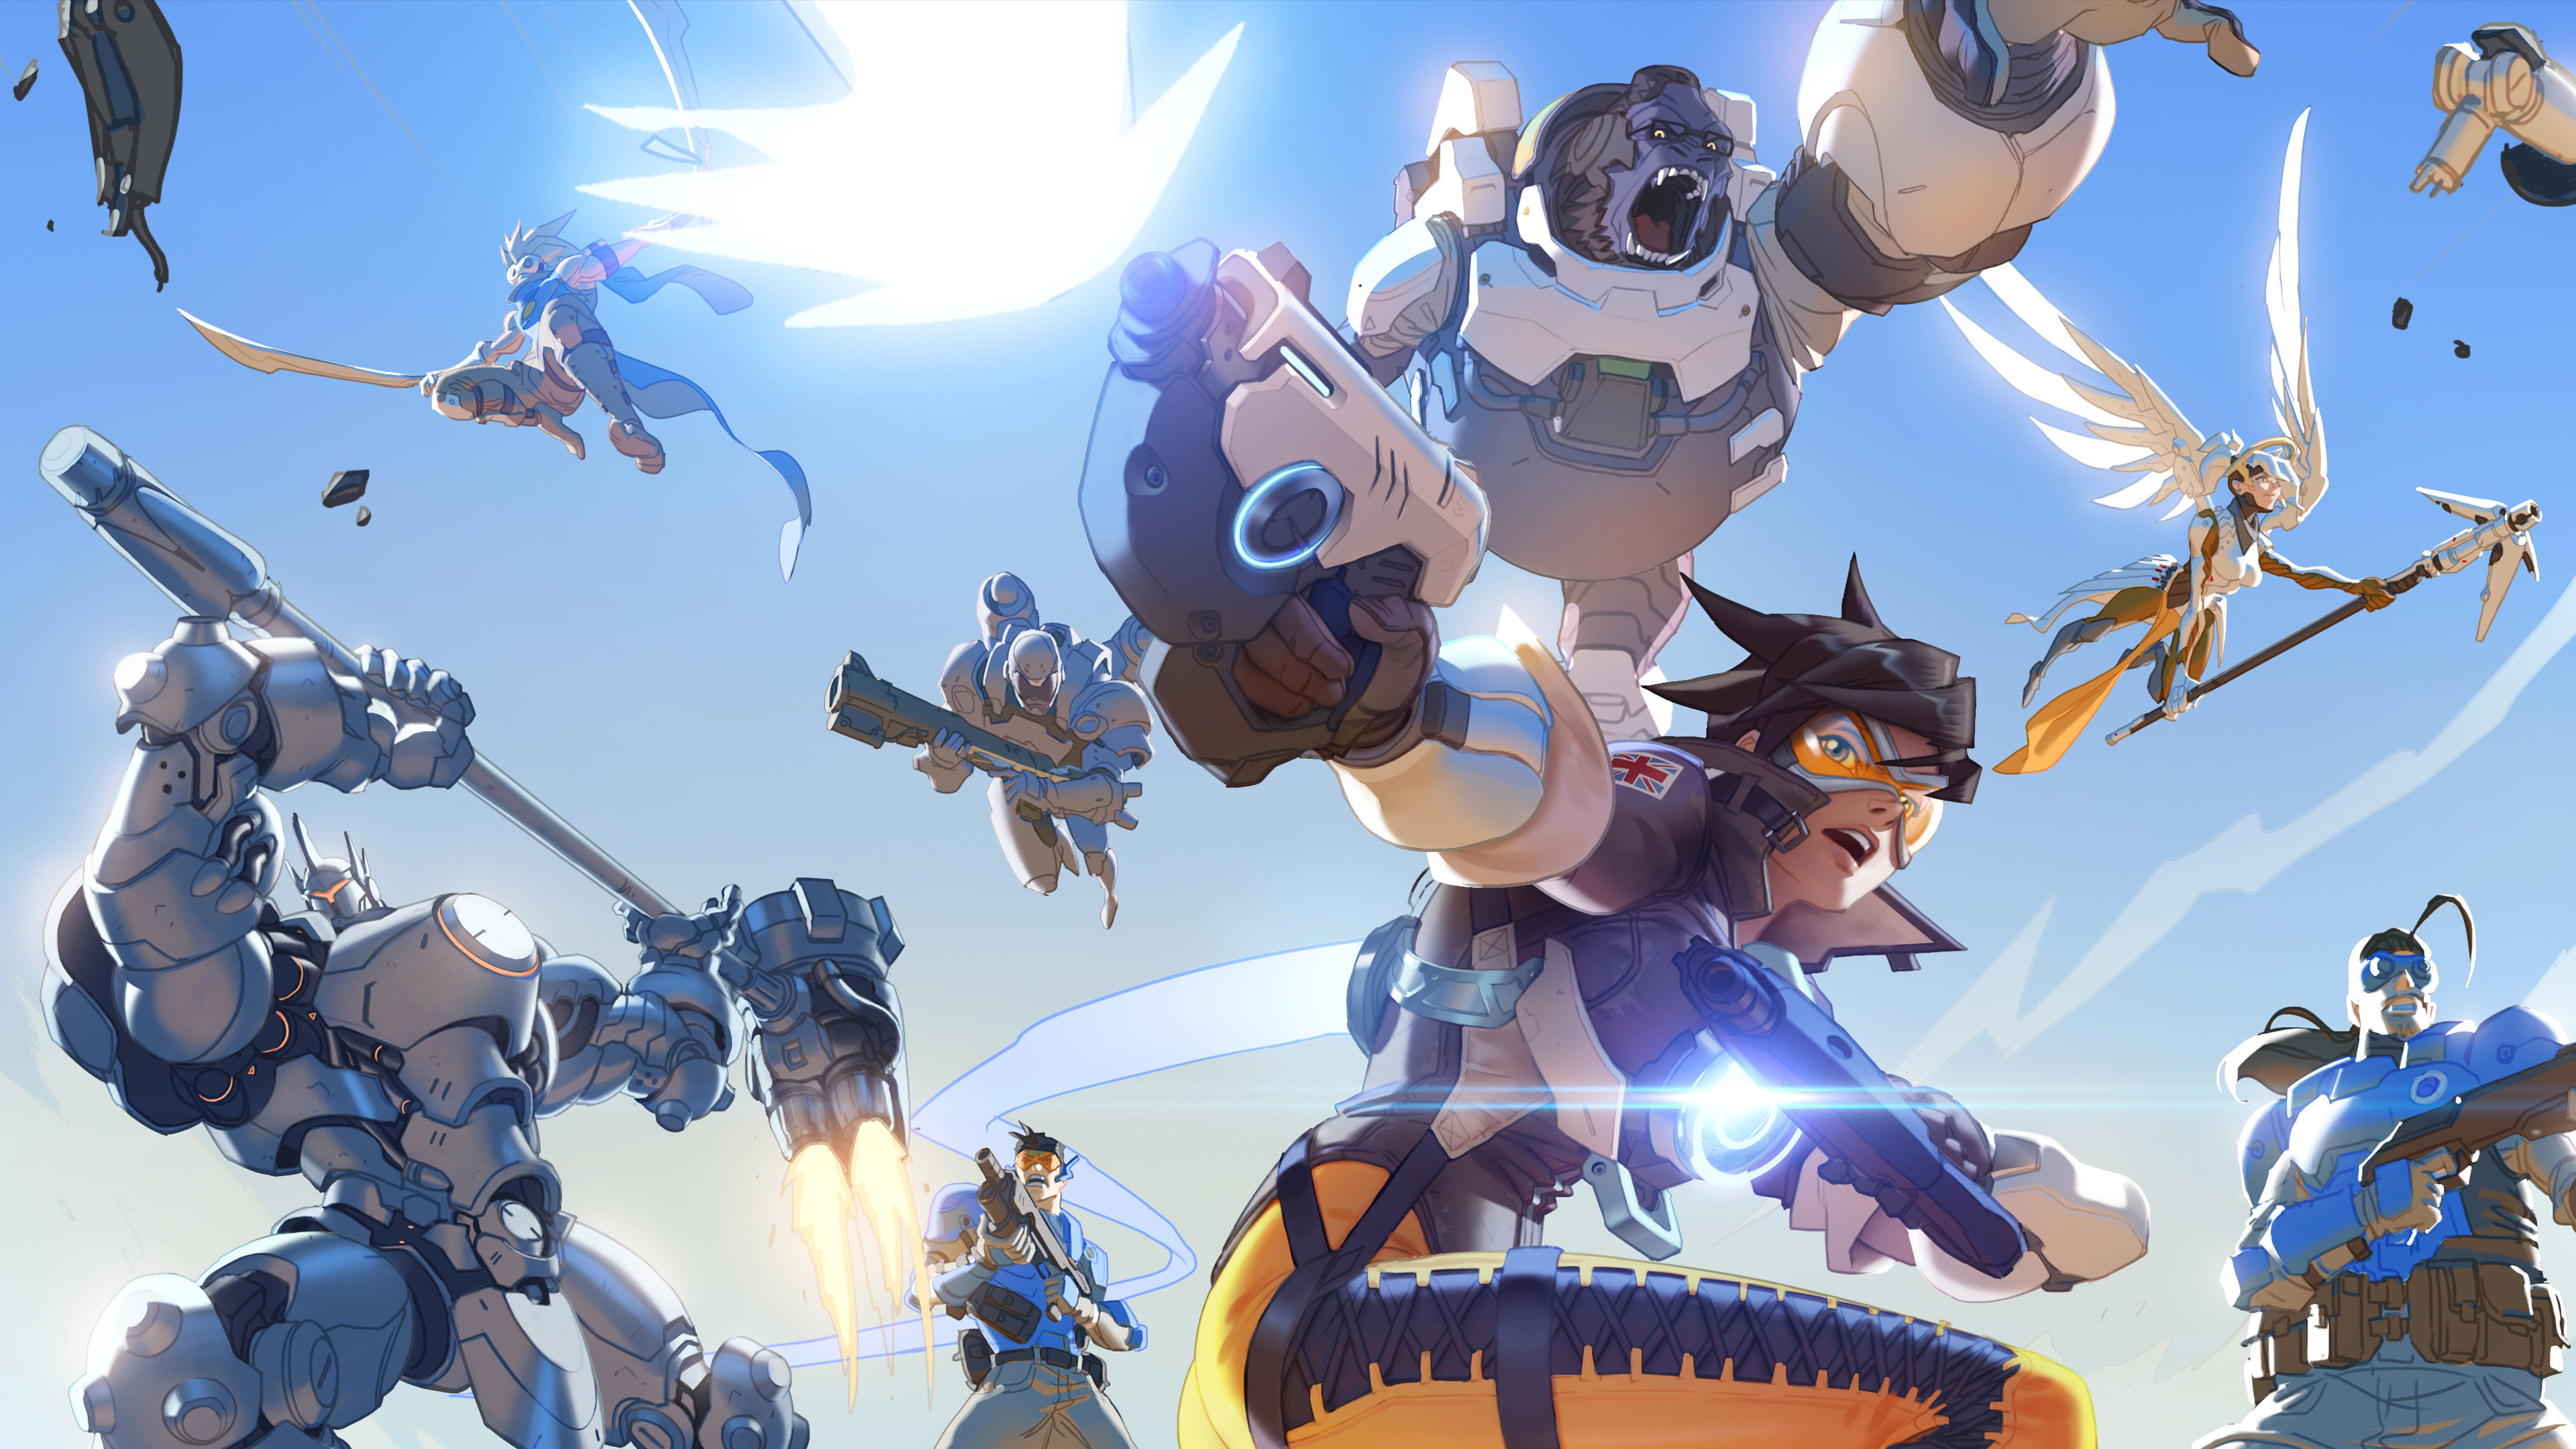 La edición física de Overwatch: Game of the Year Edition se pondrá a la venta el 28 de julio